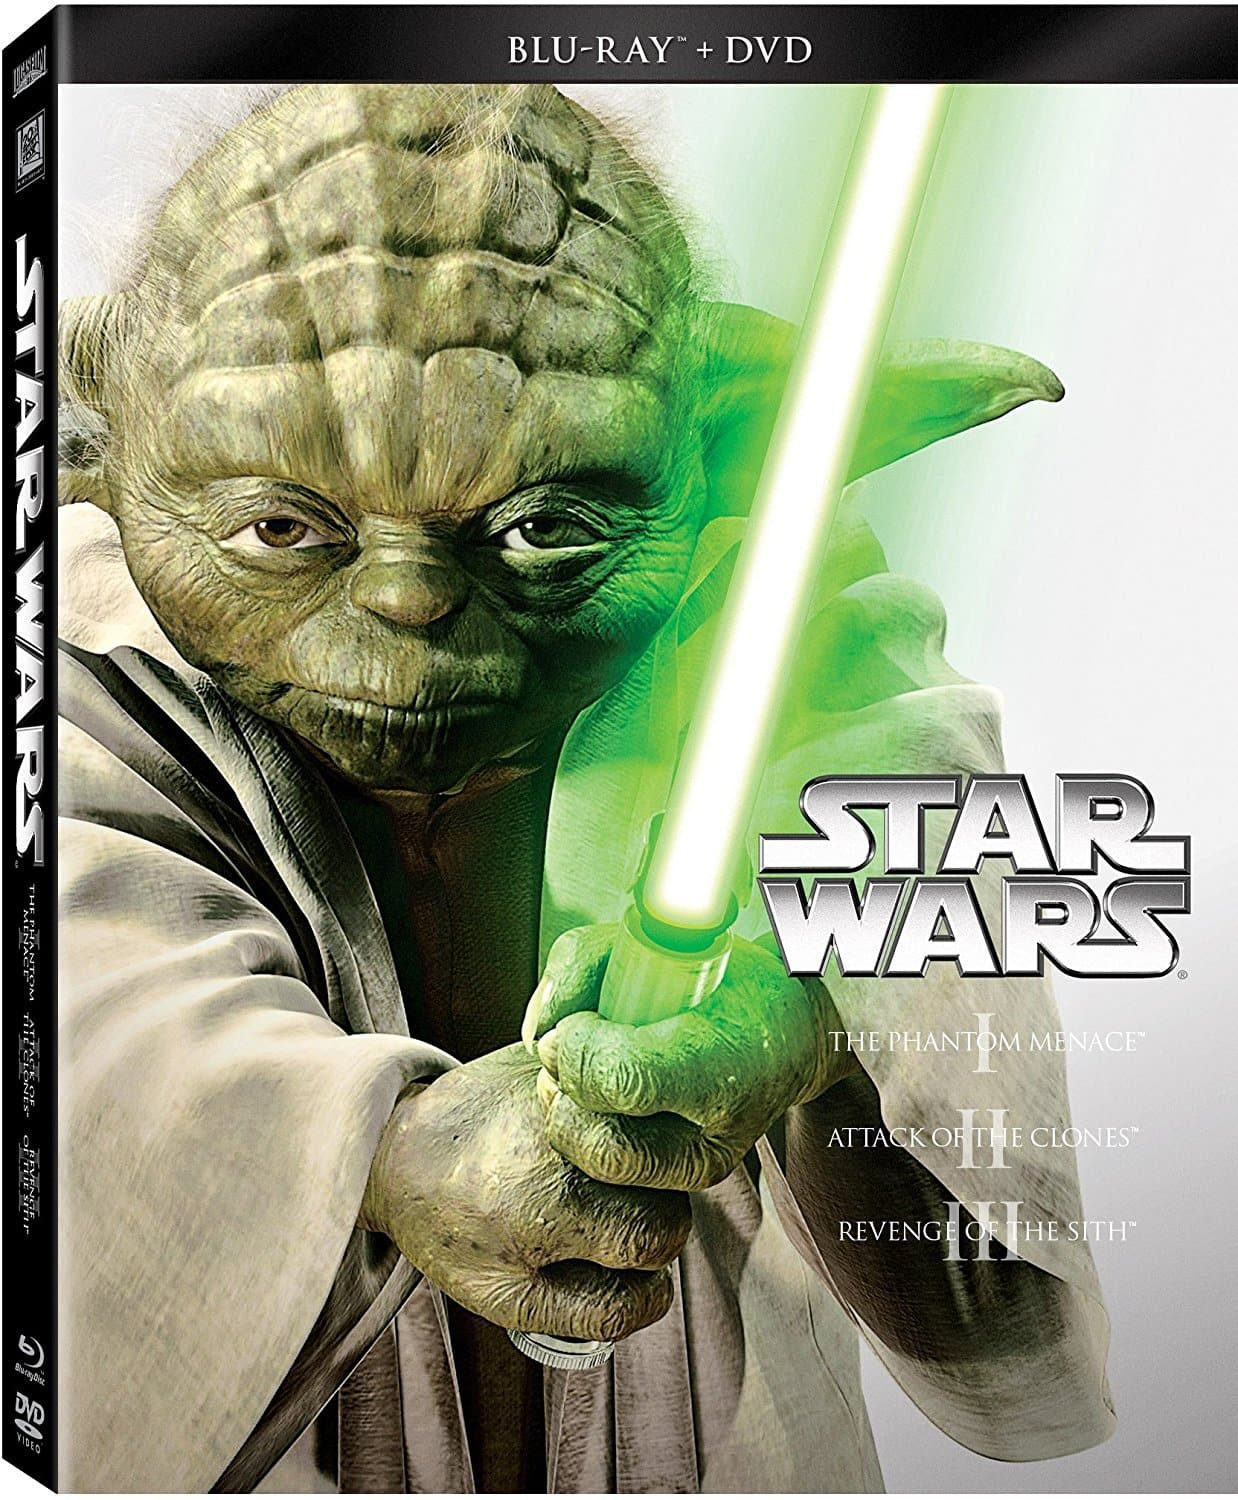 Star Wars Trilogy Episodes I - III (Blu-ray + DVD) $14.39, IV-VI (Blu-ray + DVD) $18.79 & More + Free Shipping